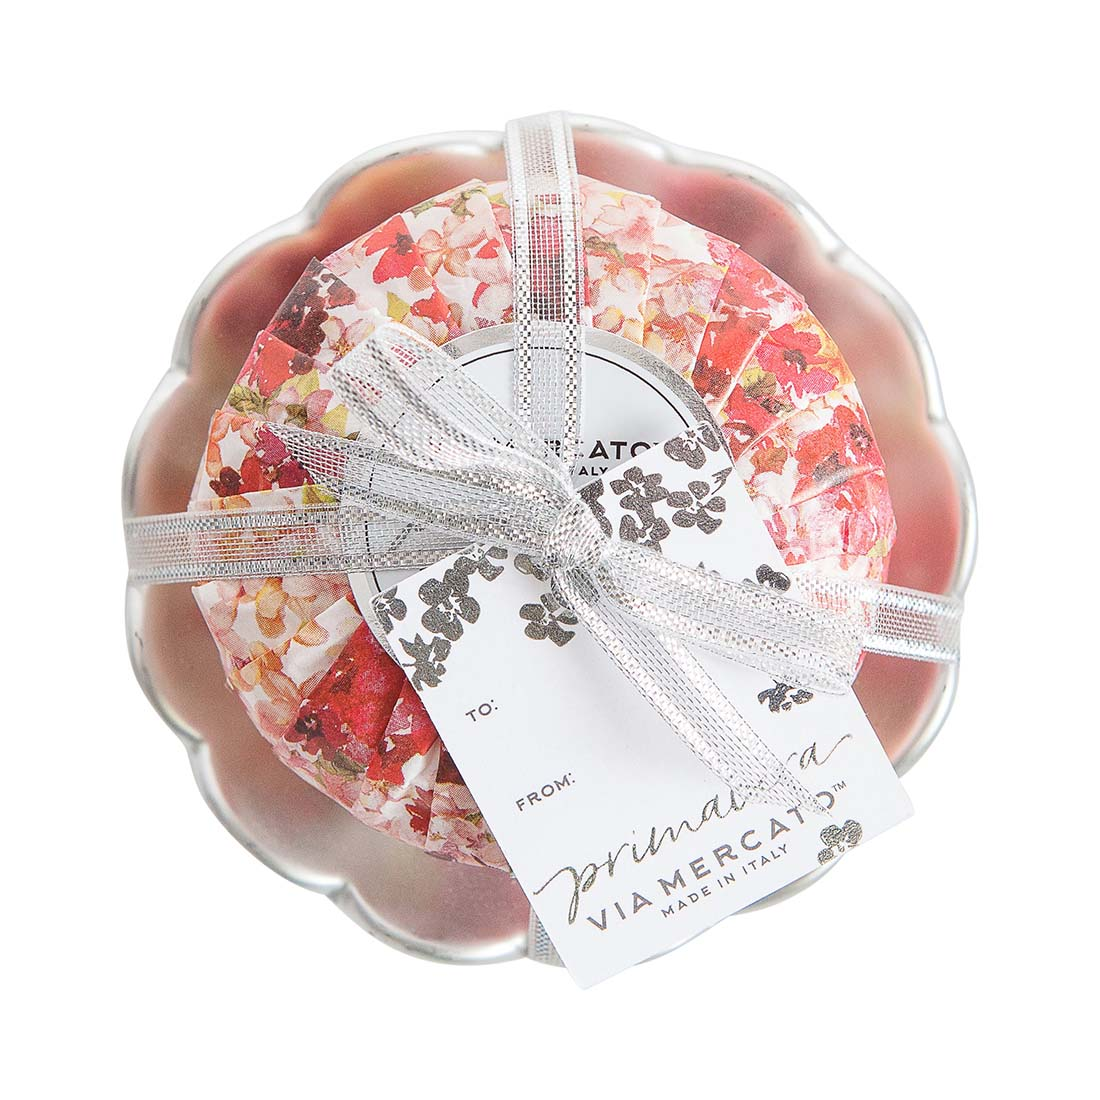 Red Currant Blossom Soap & Dish Set